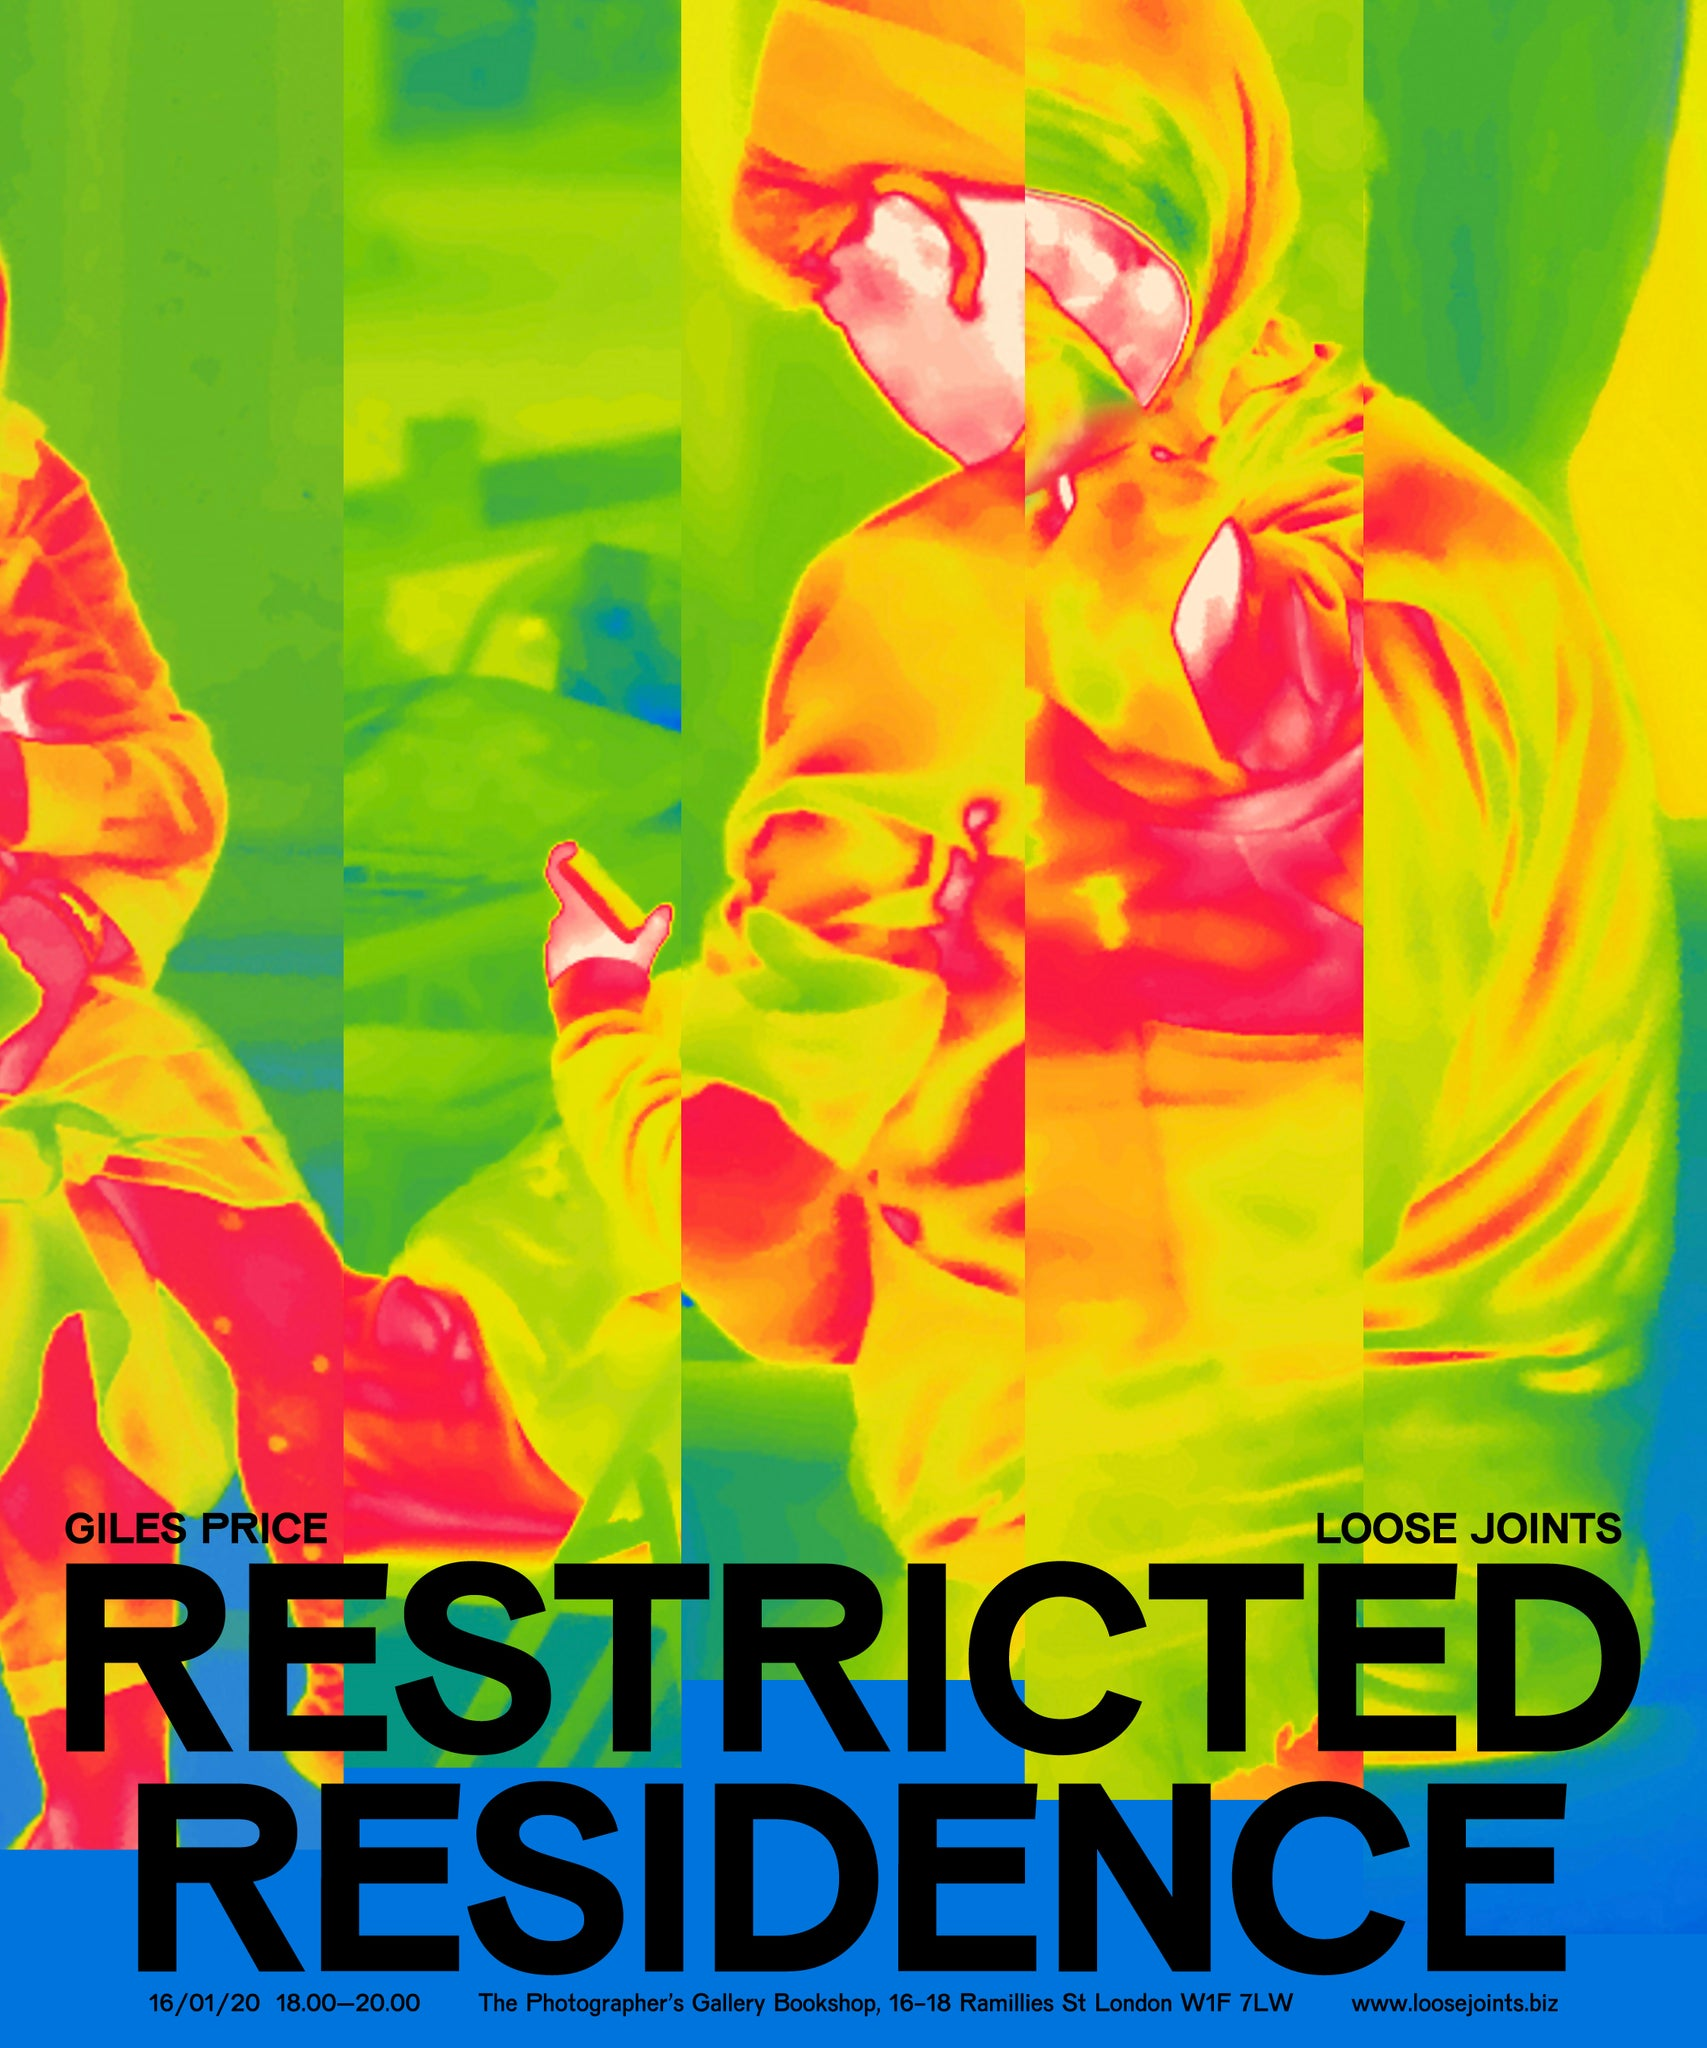 Giles Price - Restricted Residence Launch, 16 January 2020